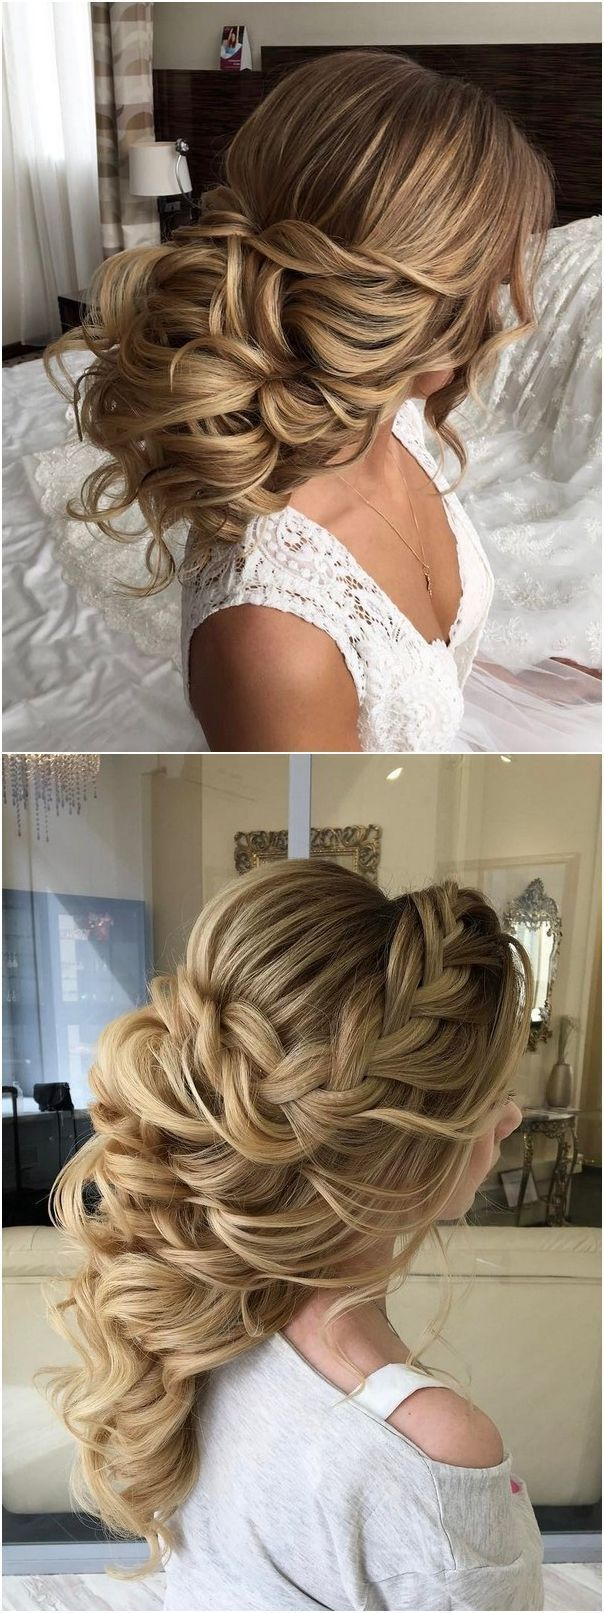 Pin by Nina   on Hair style  Pinterest  Weddingideas Updos